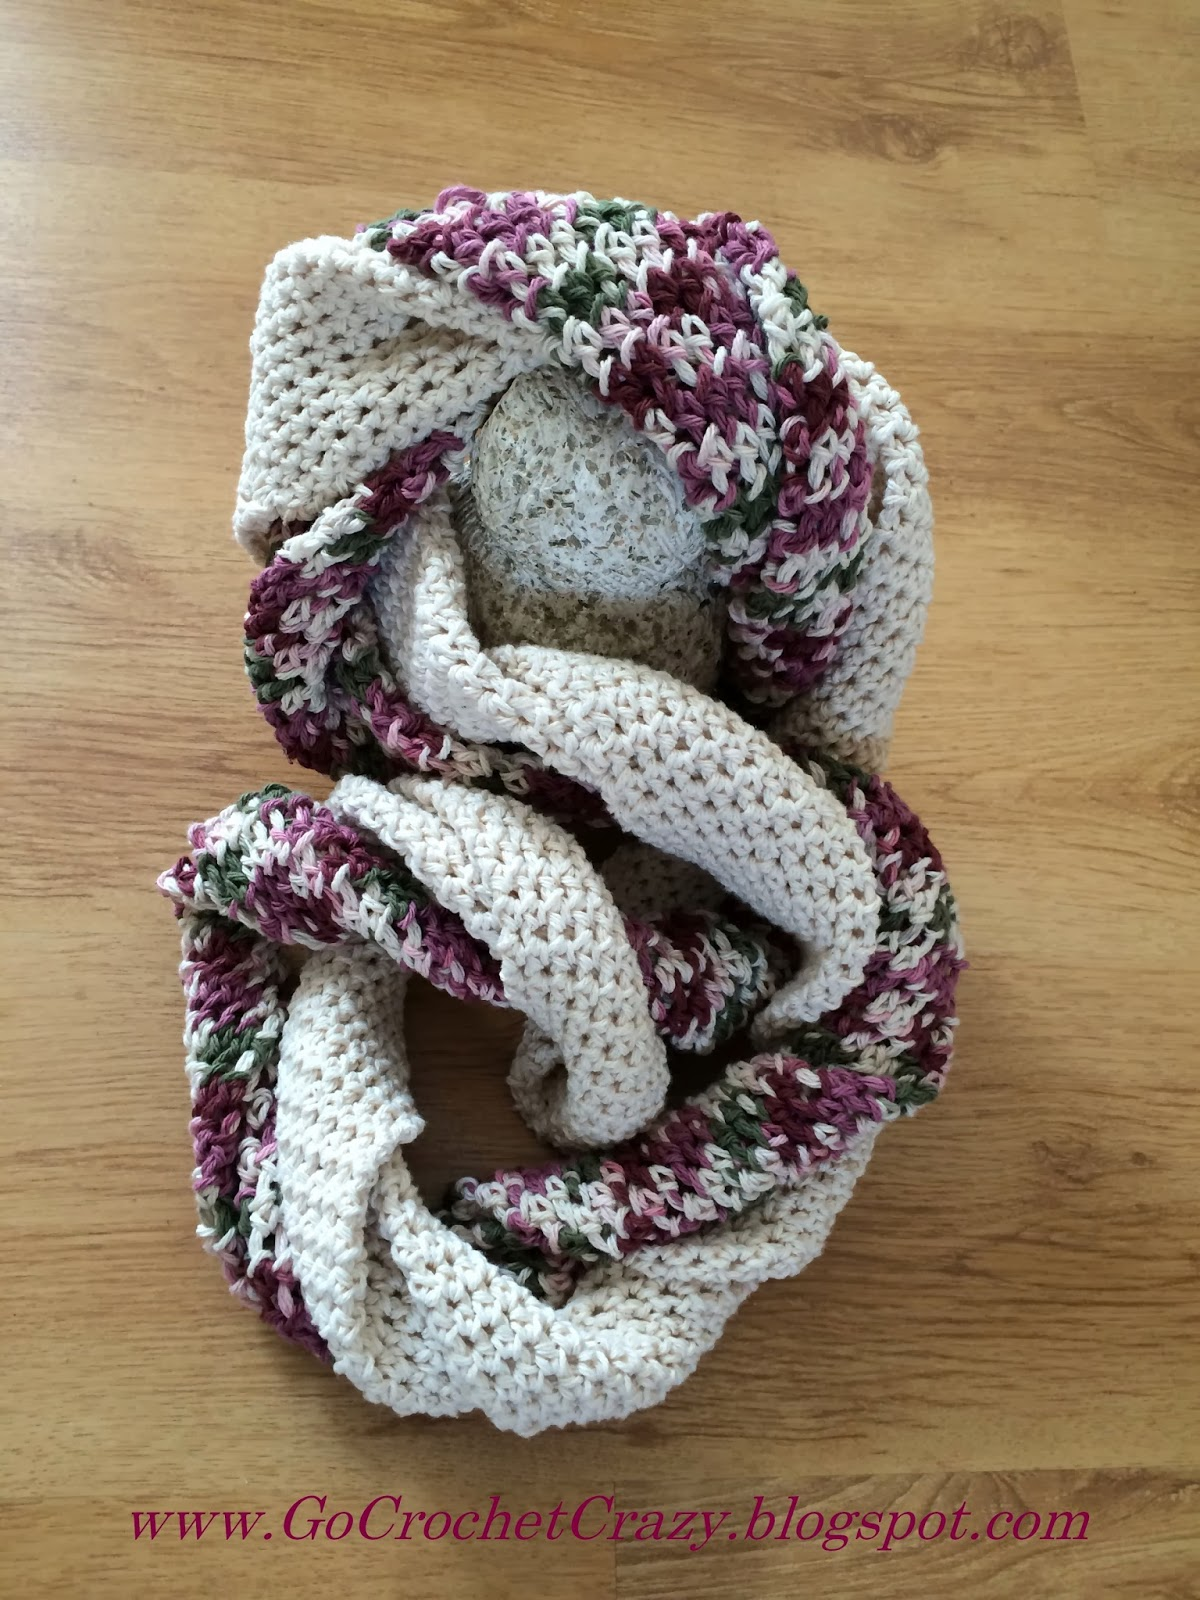 Go Crochet Crazy's Twisted Infinity Scarf, pattern available soon in an upcoming pattern eBook.